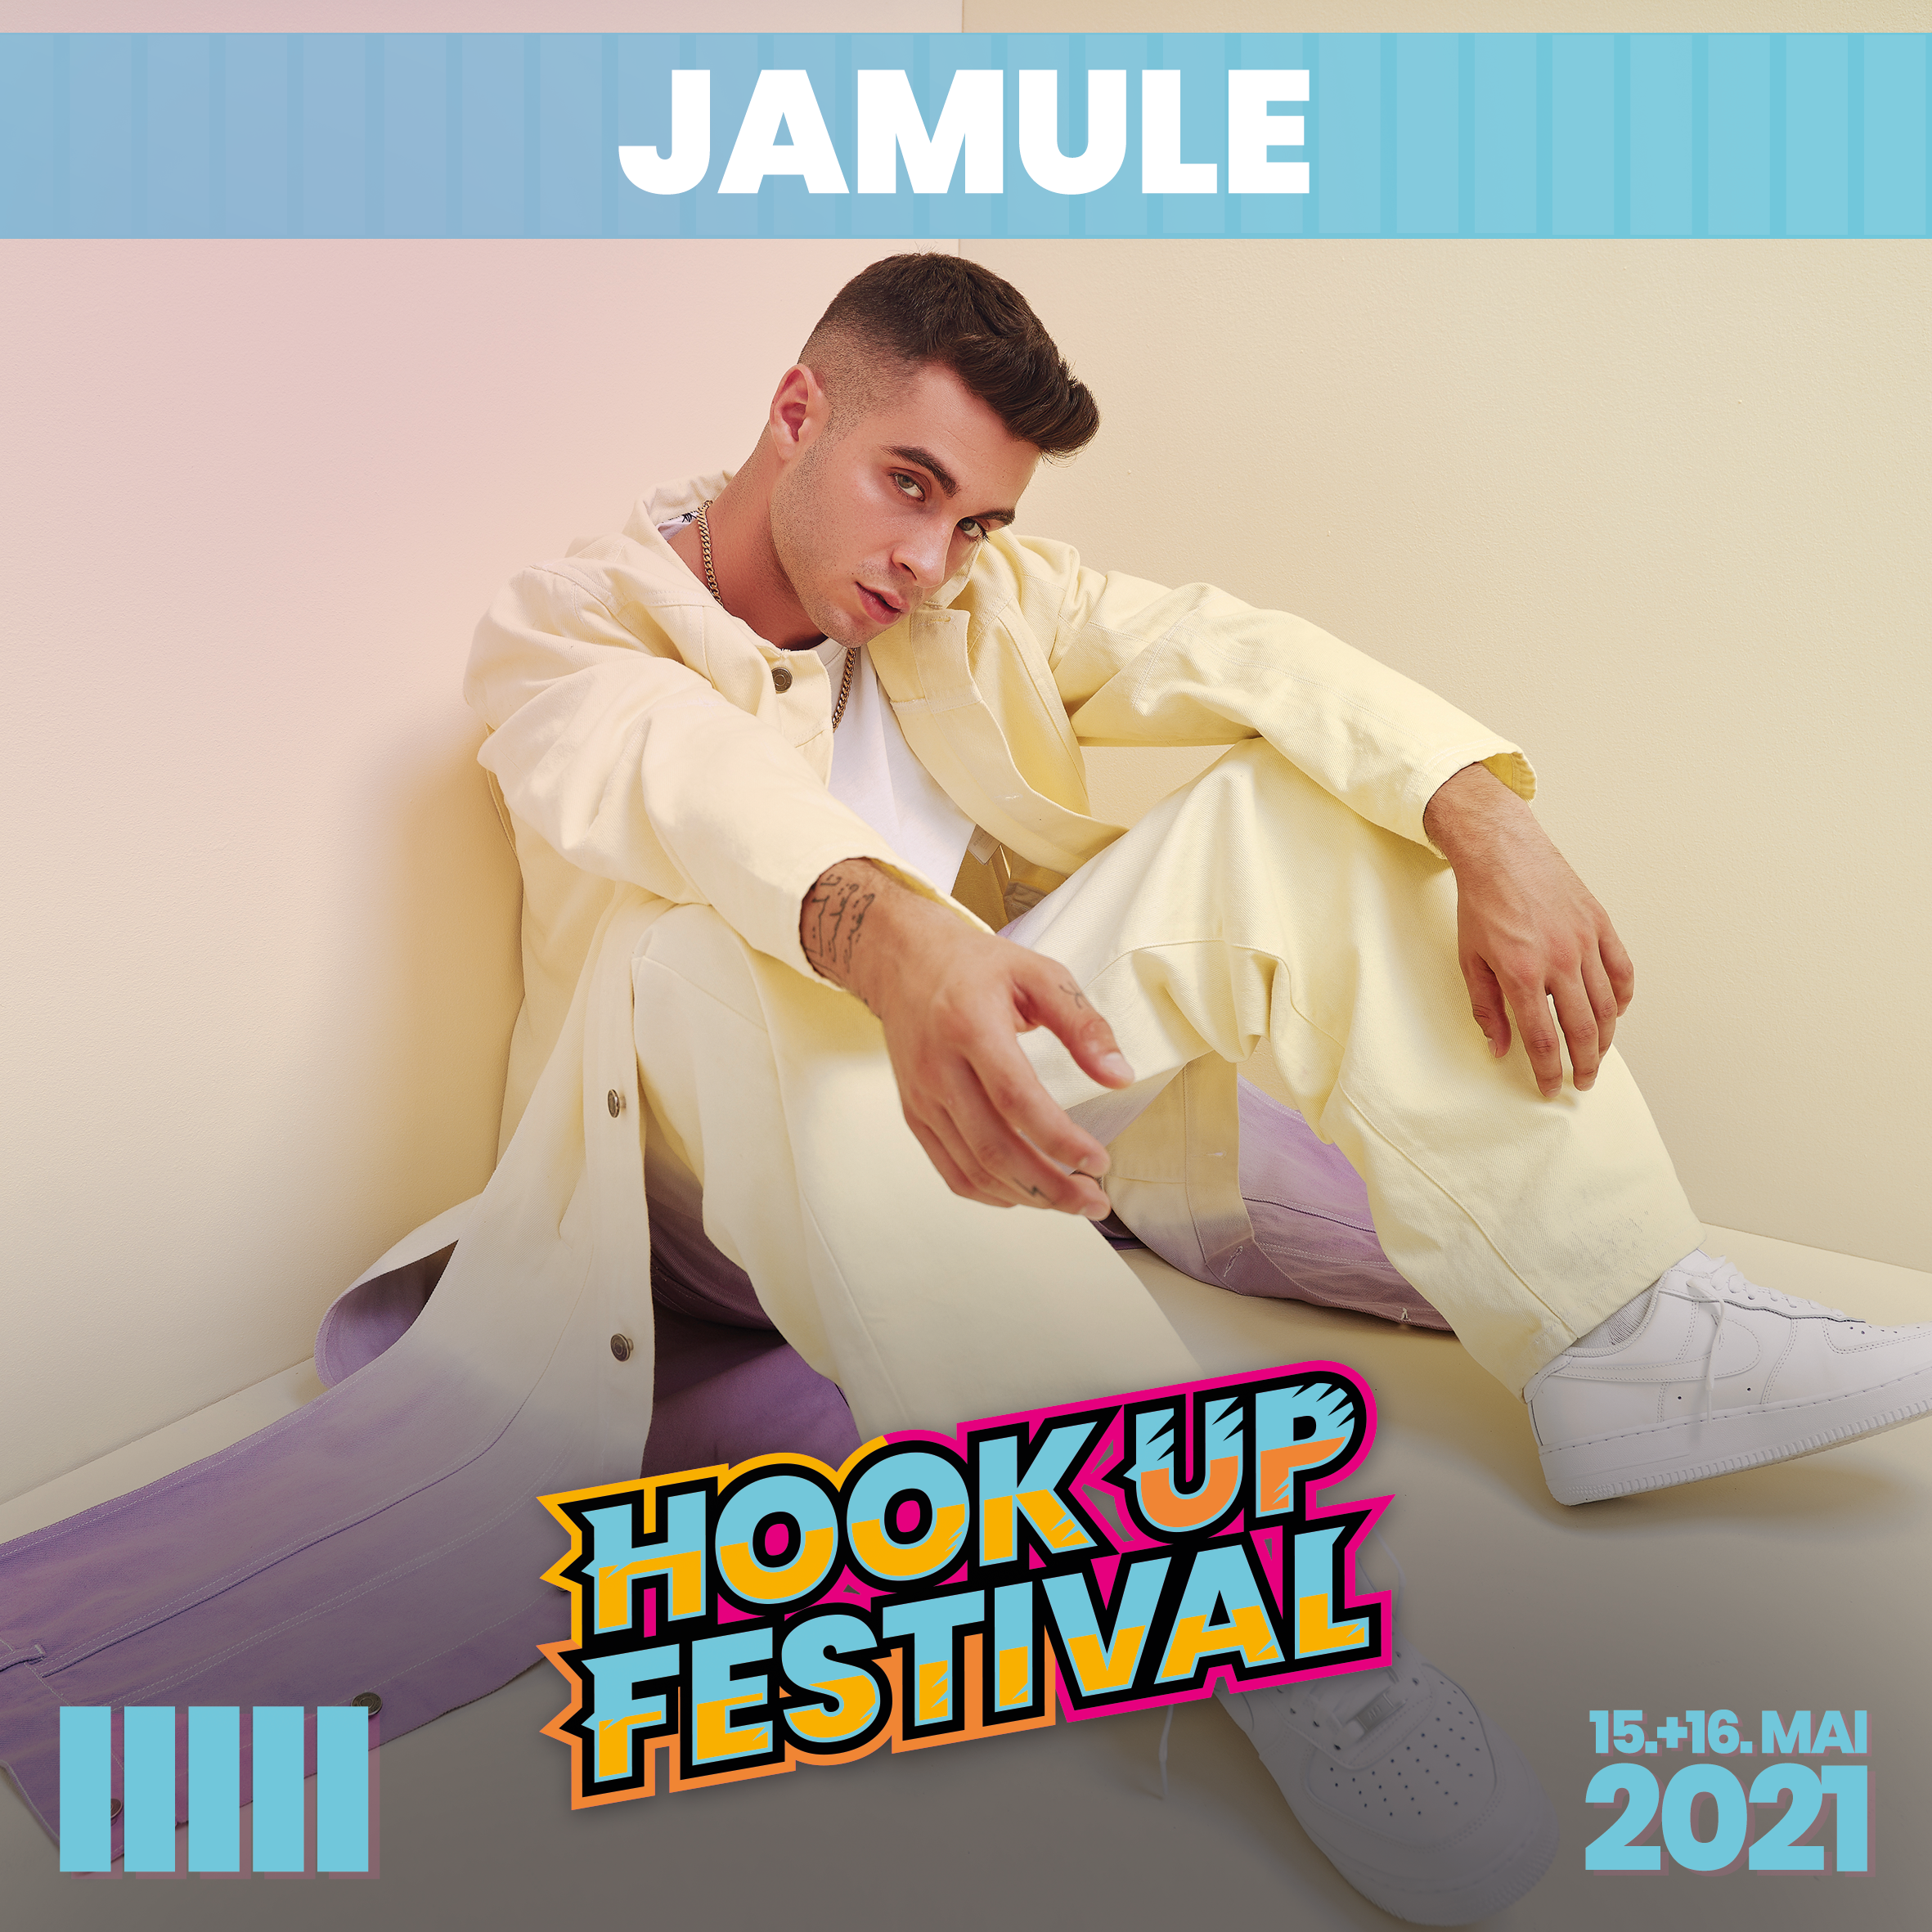 JAMULE HOOK UP FESTIVAL 2021 KARLSRUHE